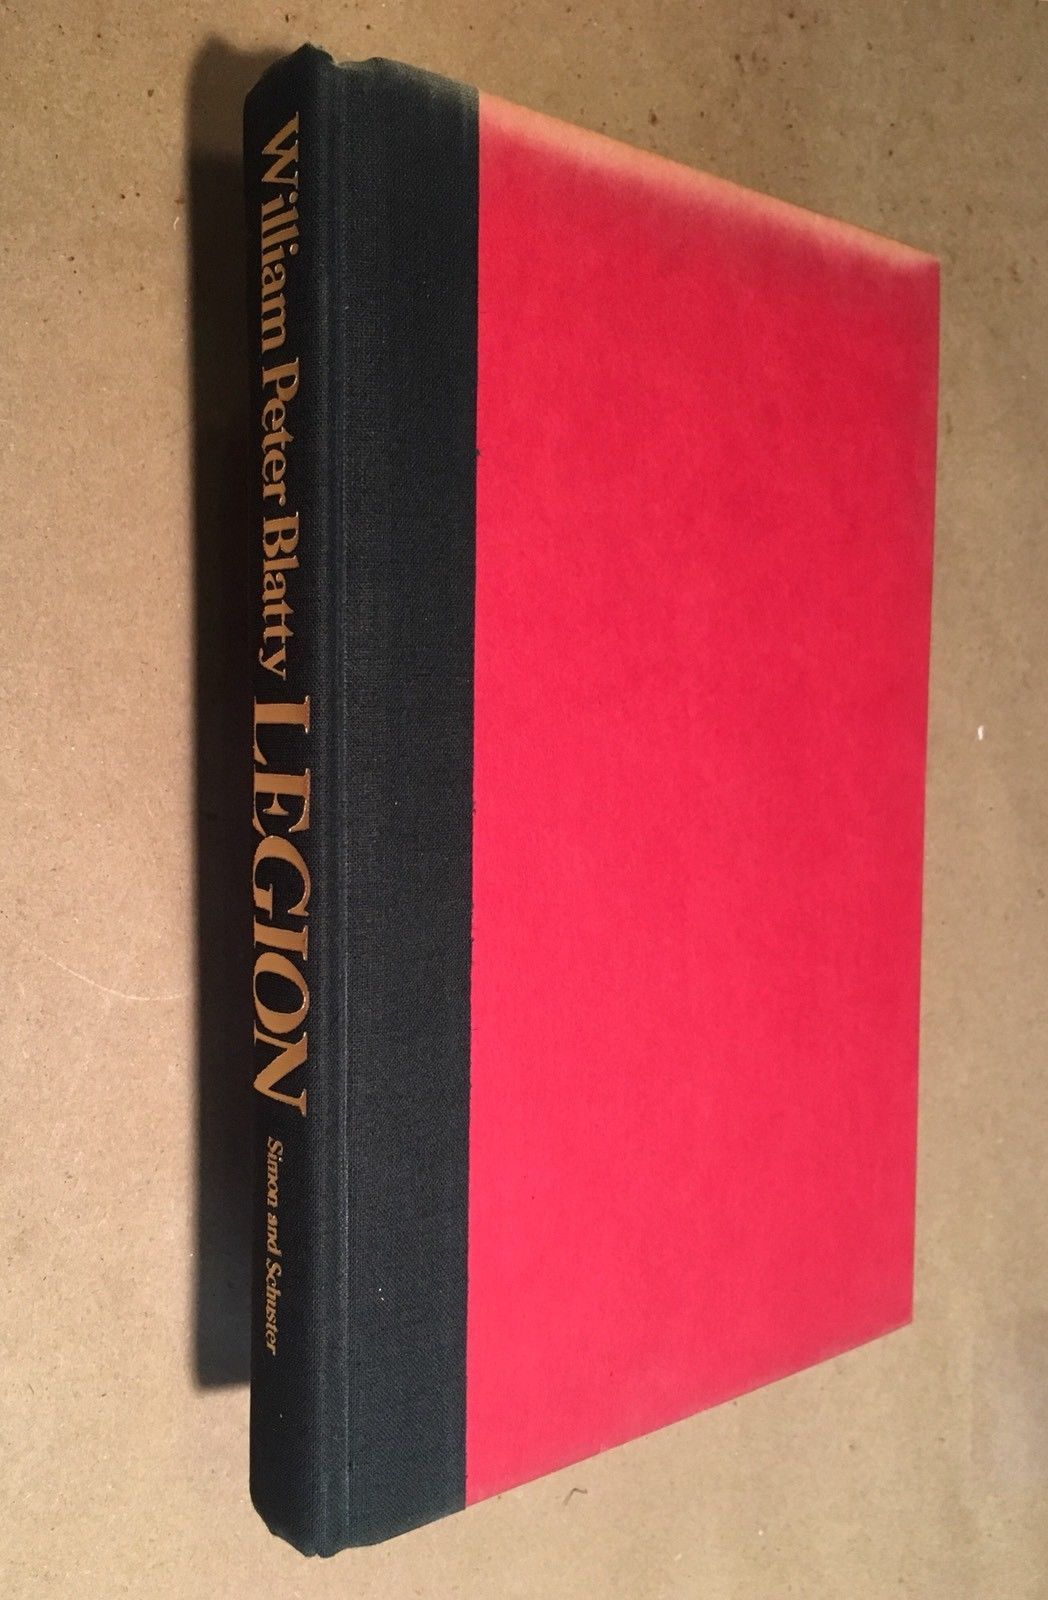 LEGION William Peter Blatty- first edition, SIGNED -COA- Sequel to The Exorcist